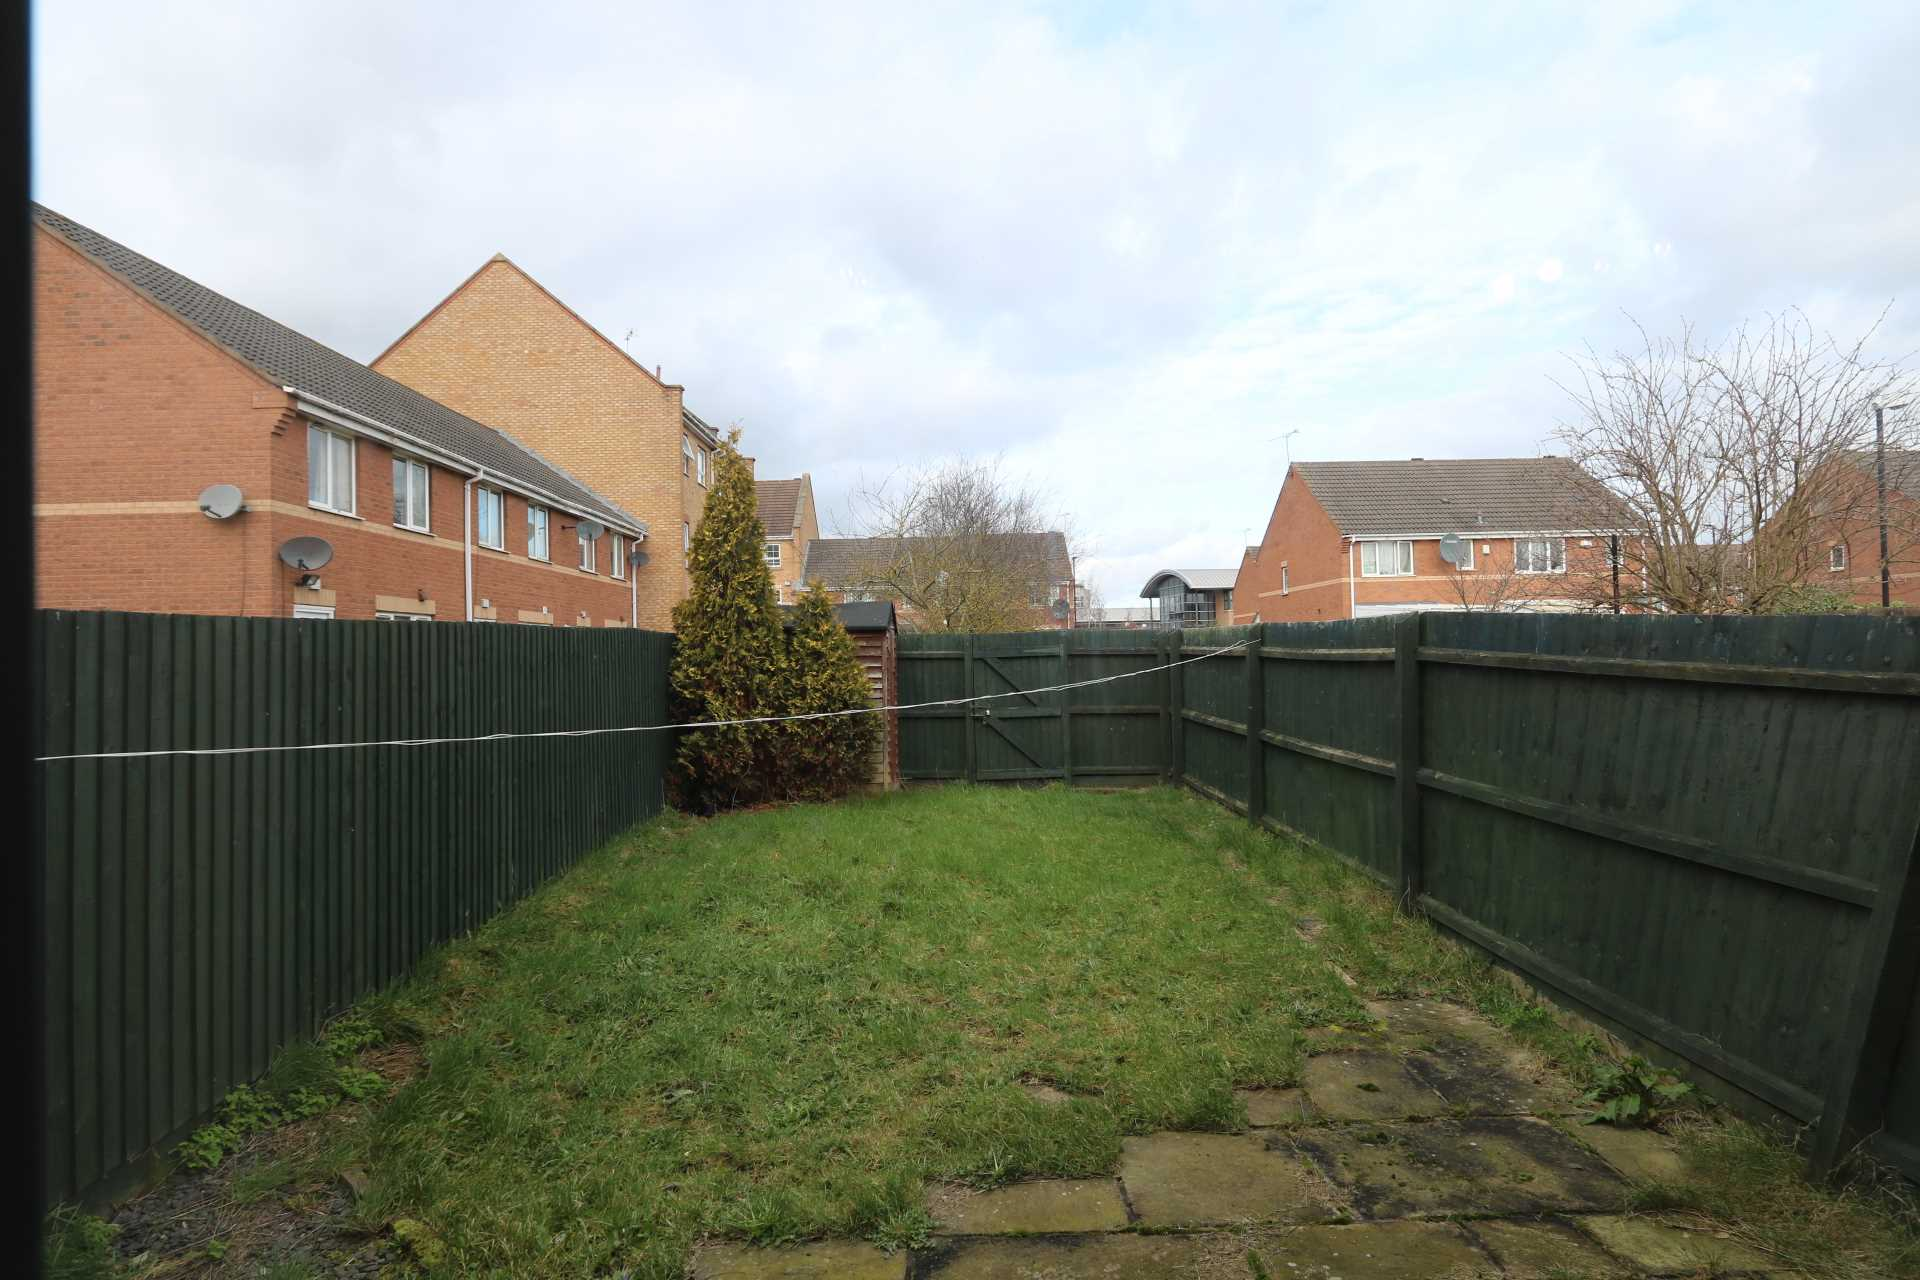 Perchfoot Close - 3 bedroom student home fully furnished, WIFI & bills included - NO FEES, Image 2